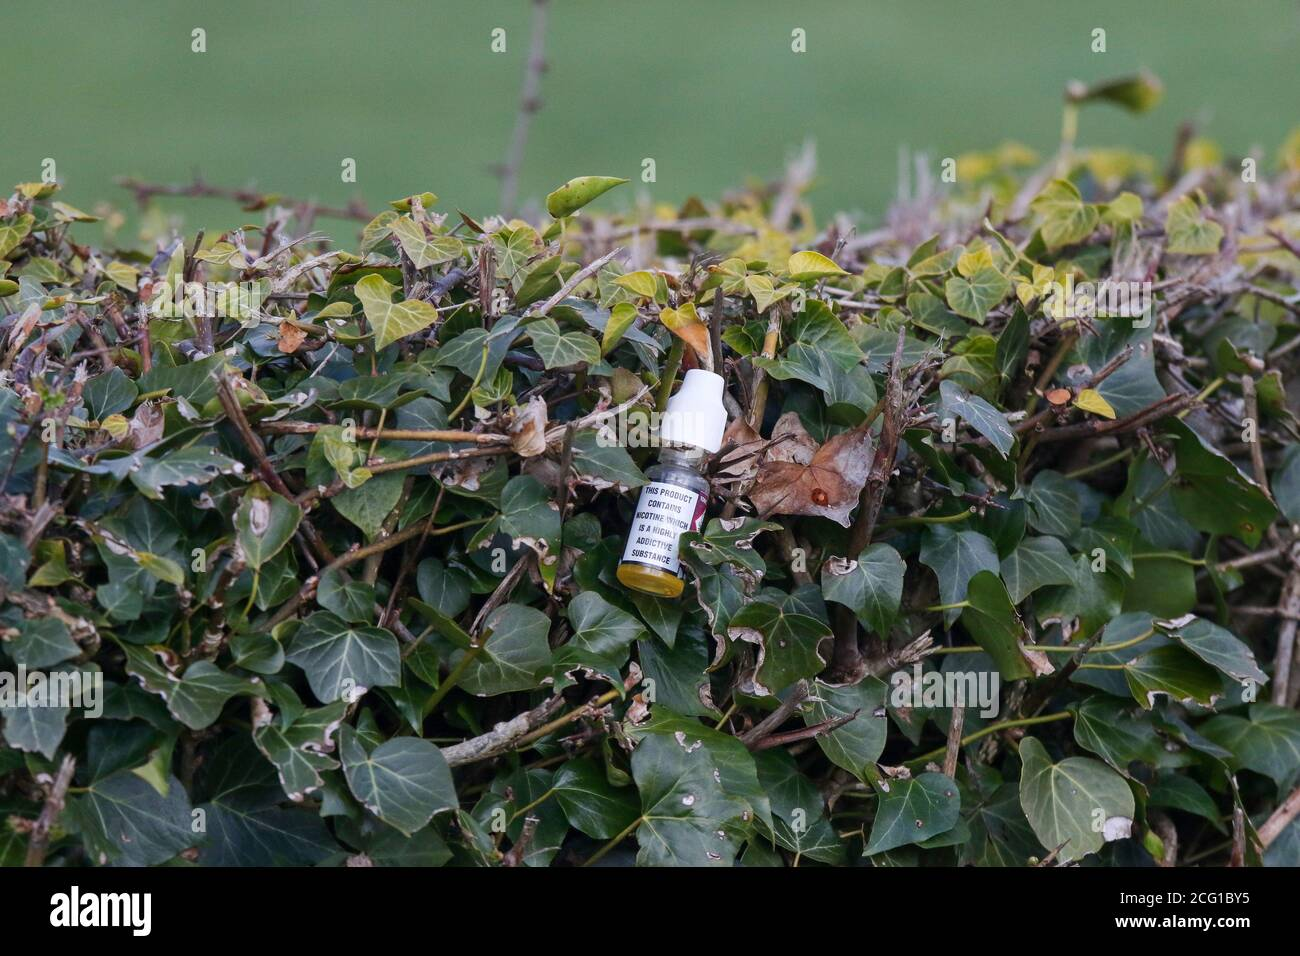 Plastic litter in countryside. Small plastic bottle with white top containing addictive nicotine substance, vaping fluid bottle, disposed of in hedge Stock Photo